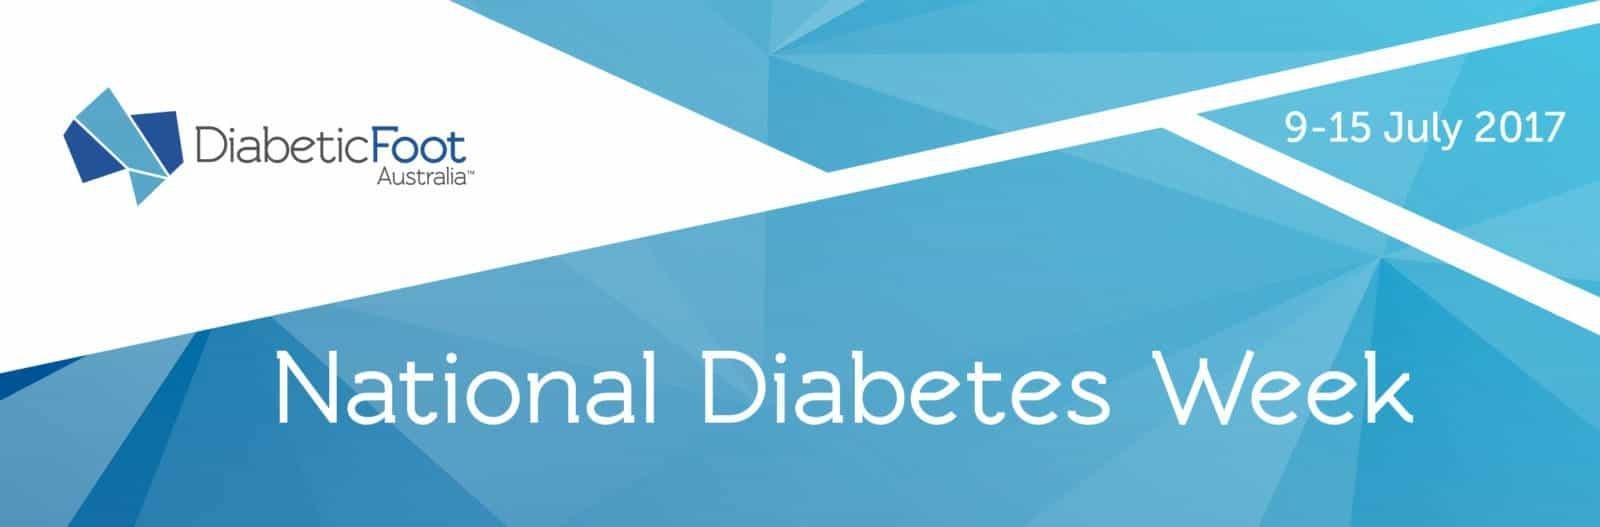 National Diabetes Week 2017 Australia